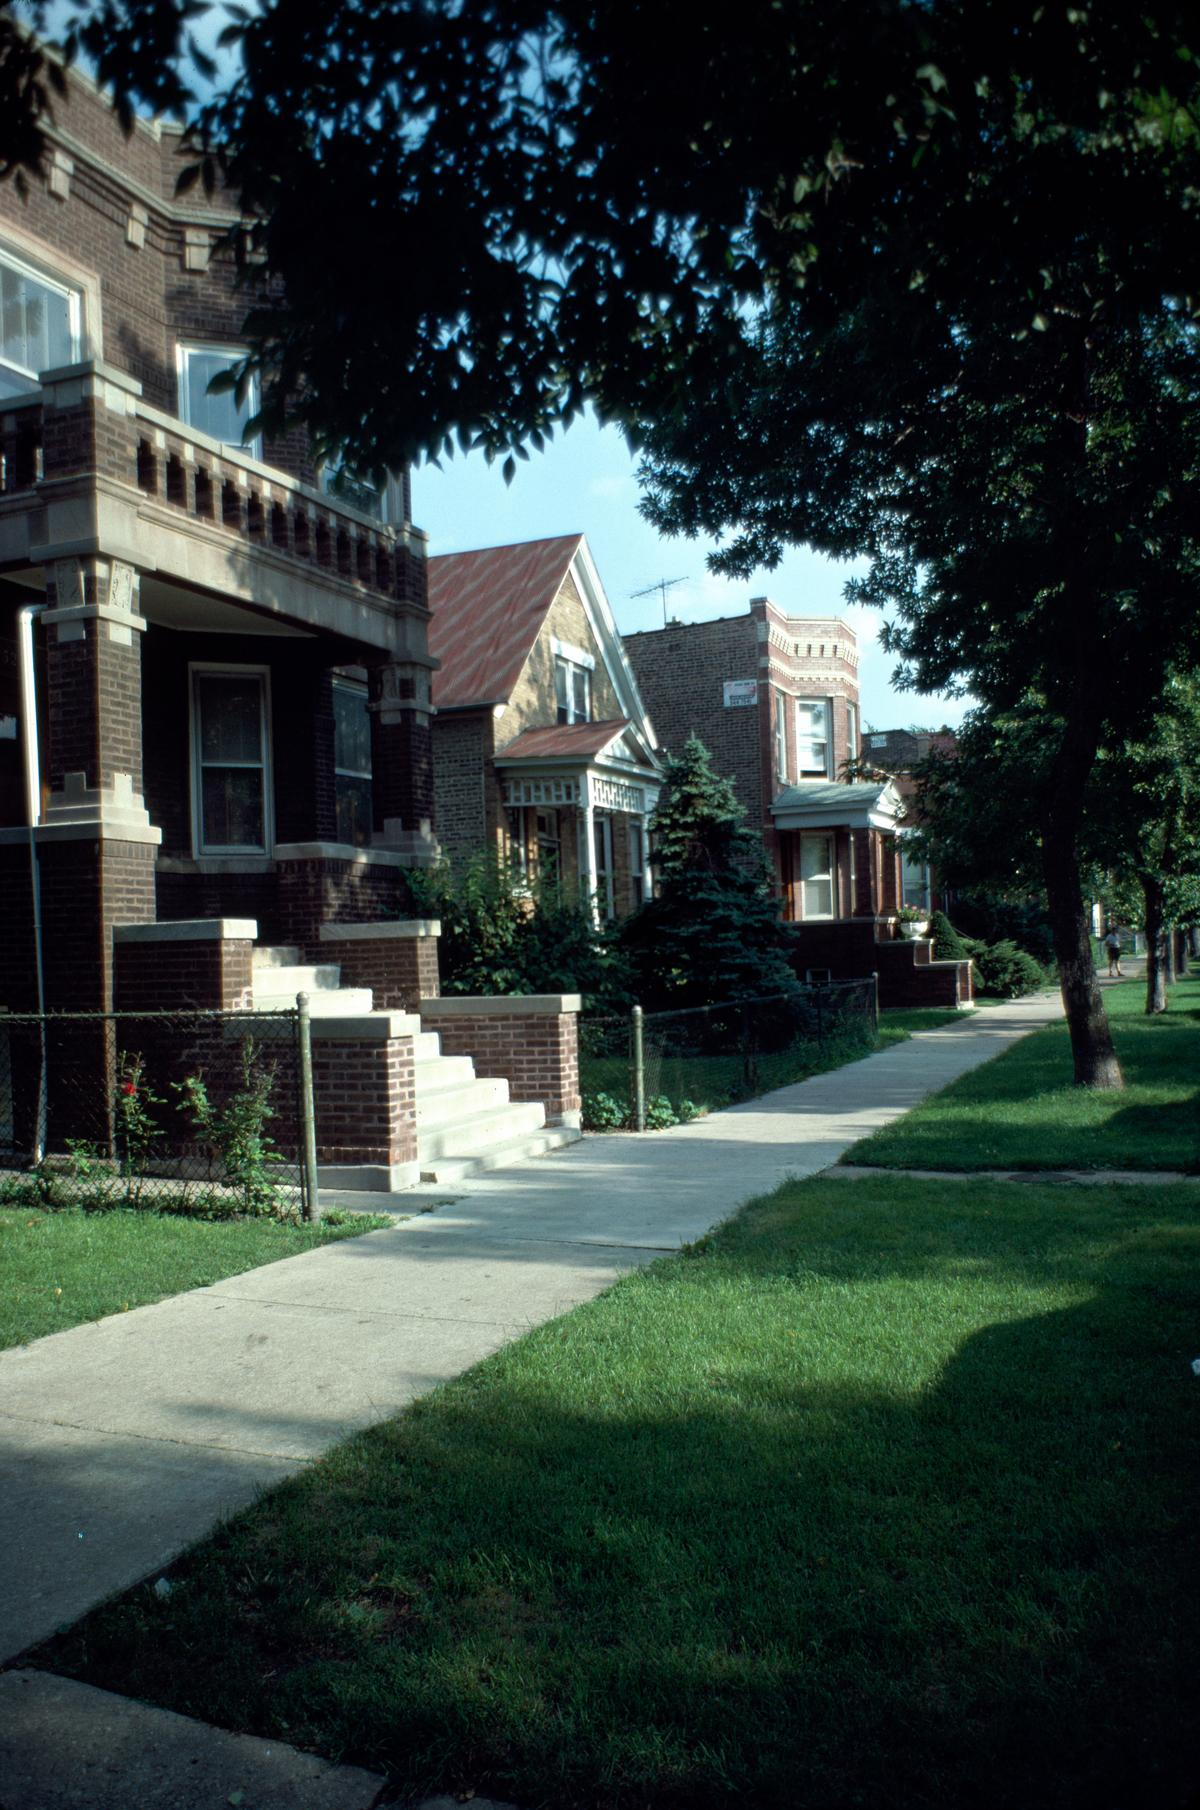 Apartments and houses, North Springfield Avenue